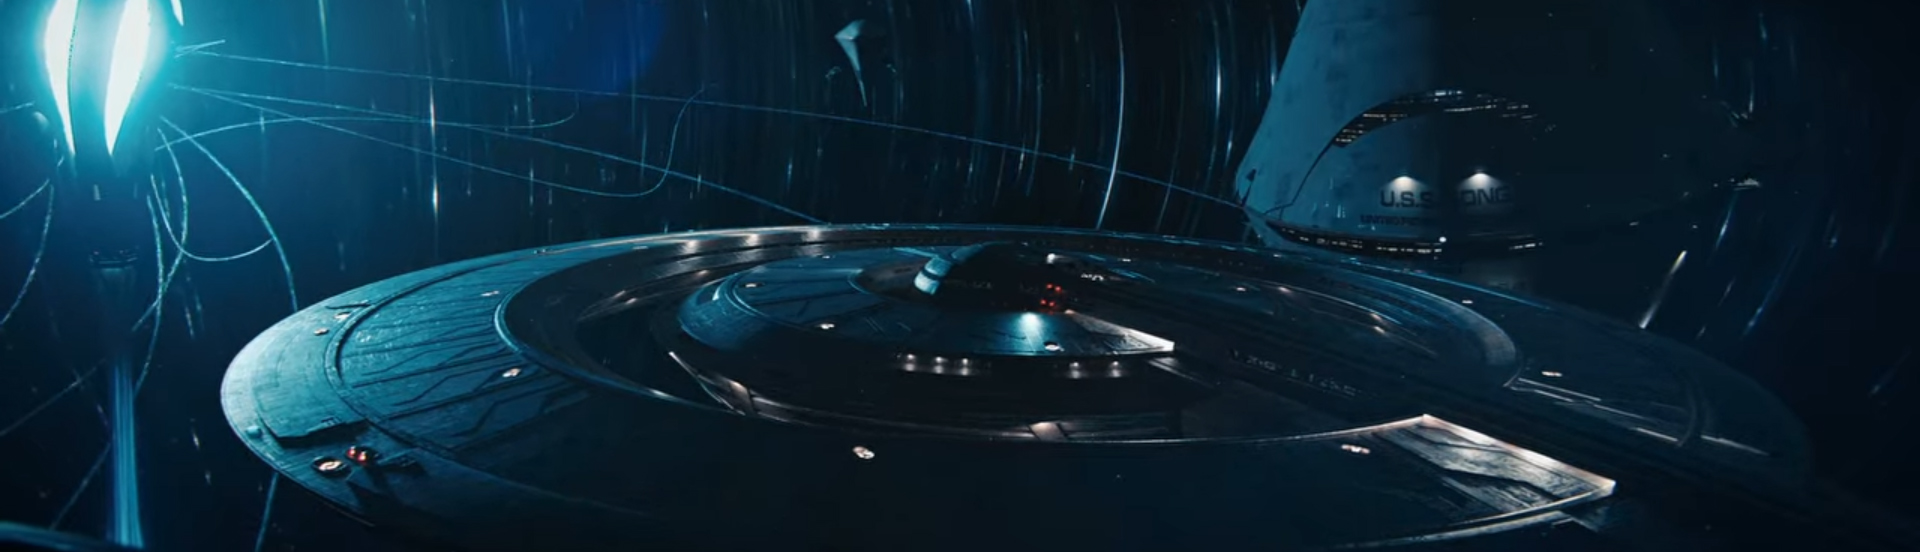 Star Trek Discovery: There Is A Tide … Image Credit: CBS Studios.